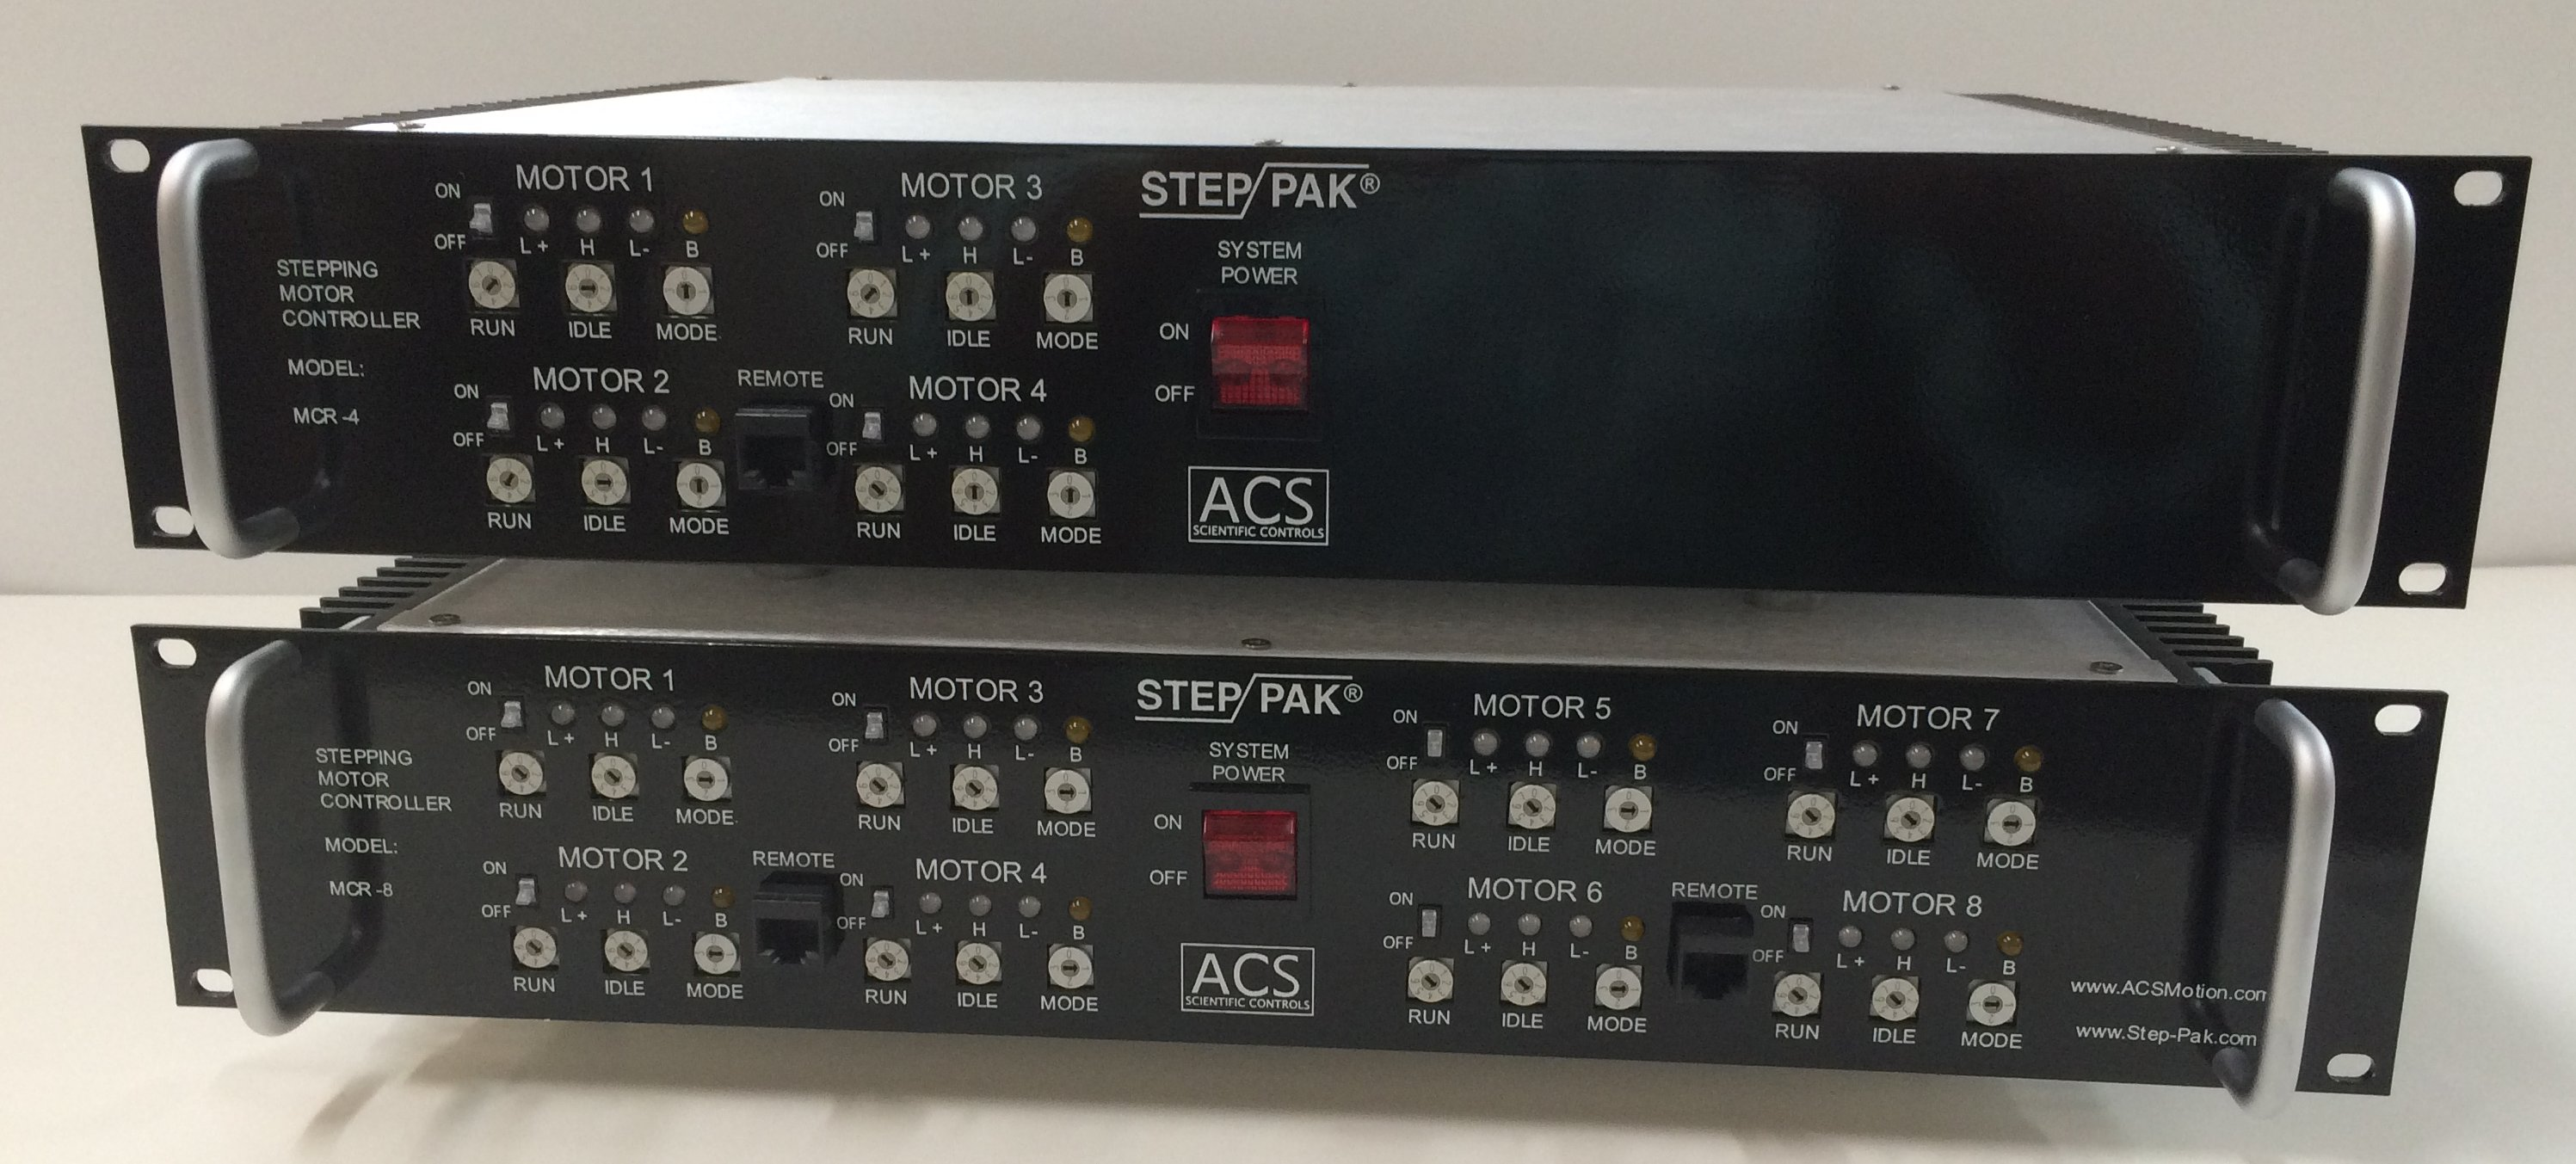 Acs Scientific Mcu 2 Catalog Page Stepper Motor Controller The Mcr Series Intelligent Motion Driver Controllers Are 4 And 8 Axis Integrated Stepping That Drive Control Phase Motors